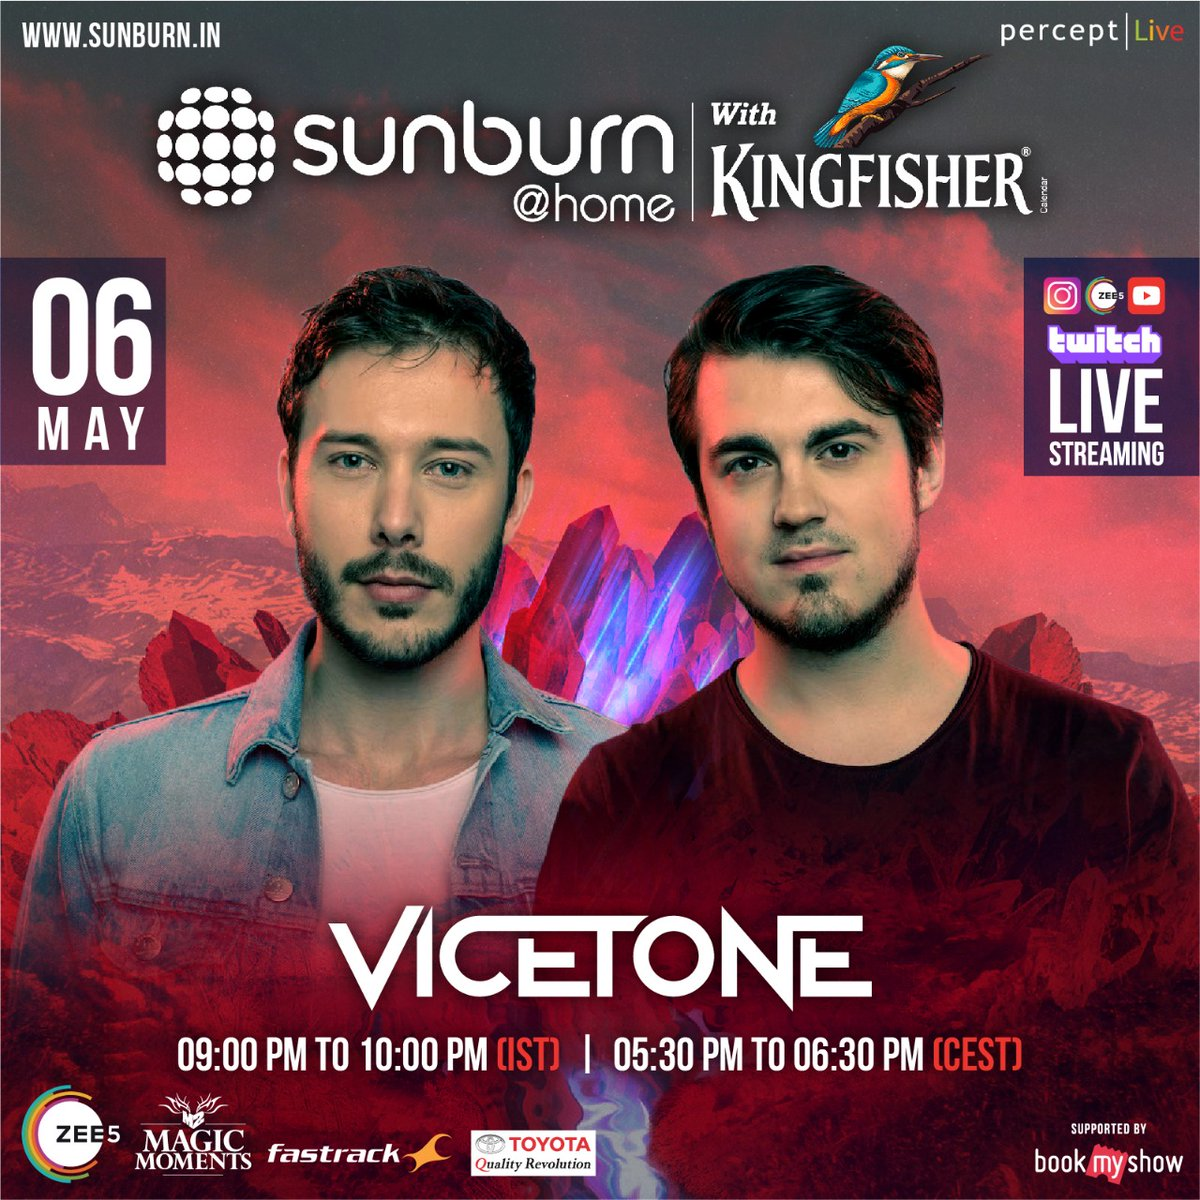 Check out our set at 9pm IST - via twitch.tv/sunburnfestival and other @SunburnFestival platforms #SunburnAtHome